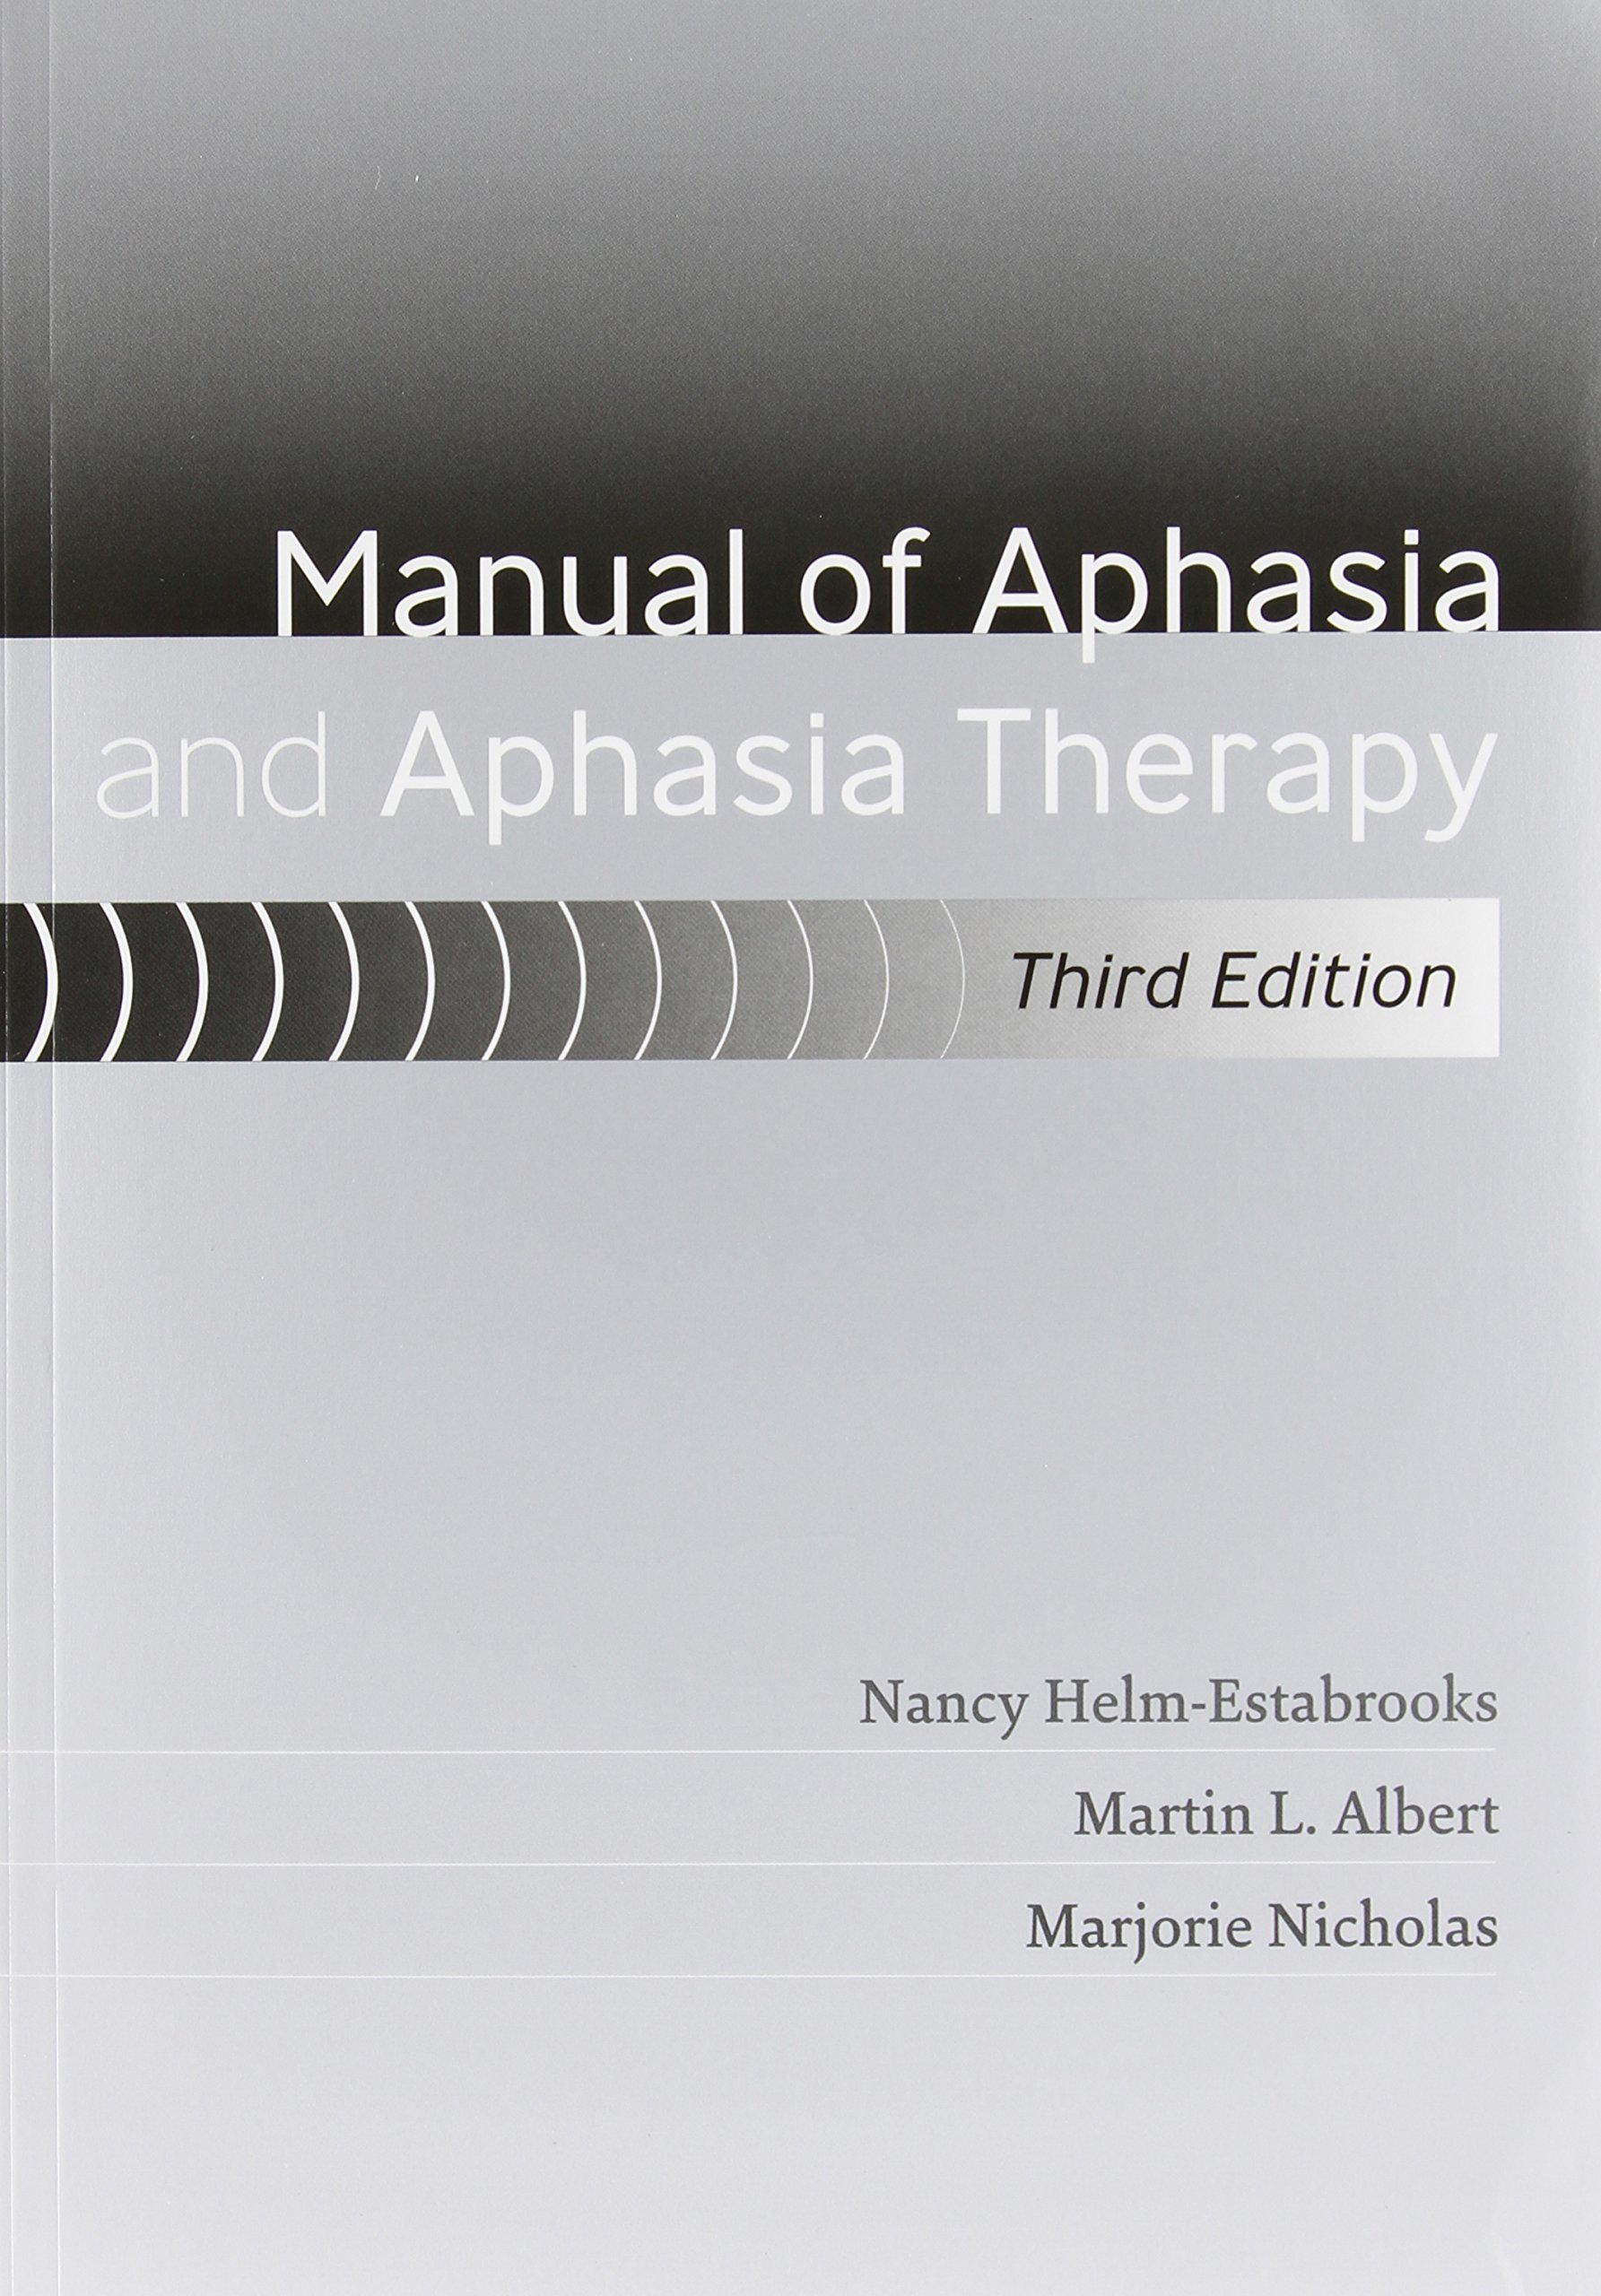 Manual of Aphasia and Aphasia Therapy [With DVD ROM]: Nancy  Helm-Estabrooks, Martin L. Albert, Marjorie Nicholas: 9781416405498: Books  - Amazon.ca